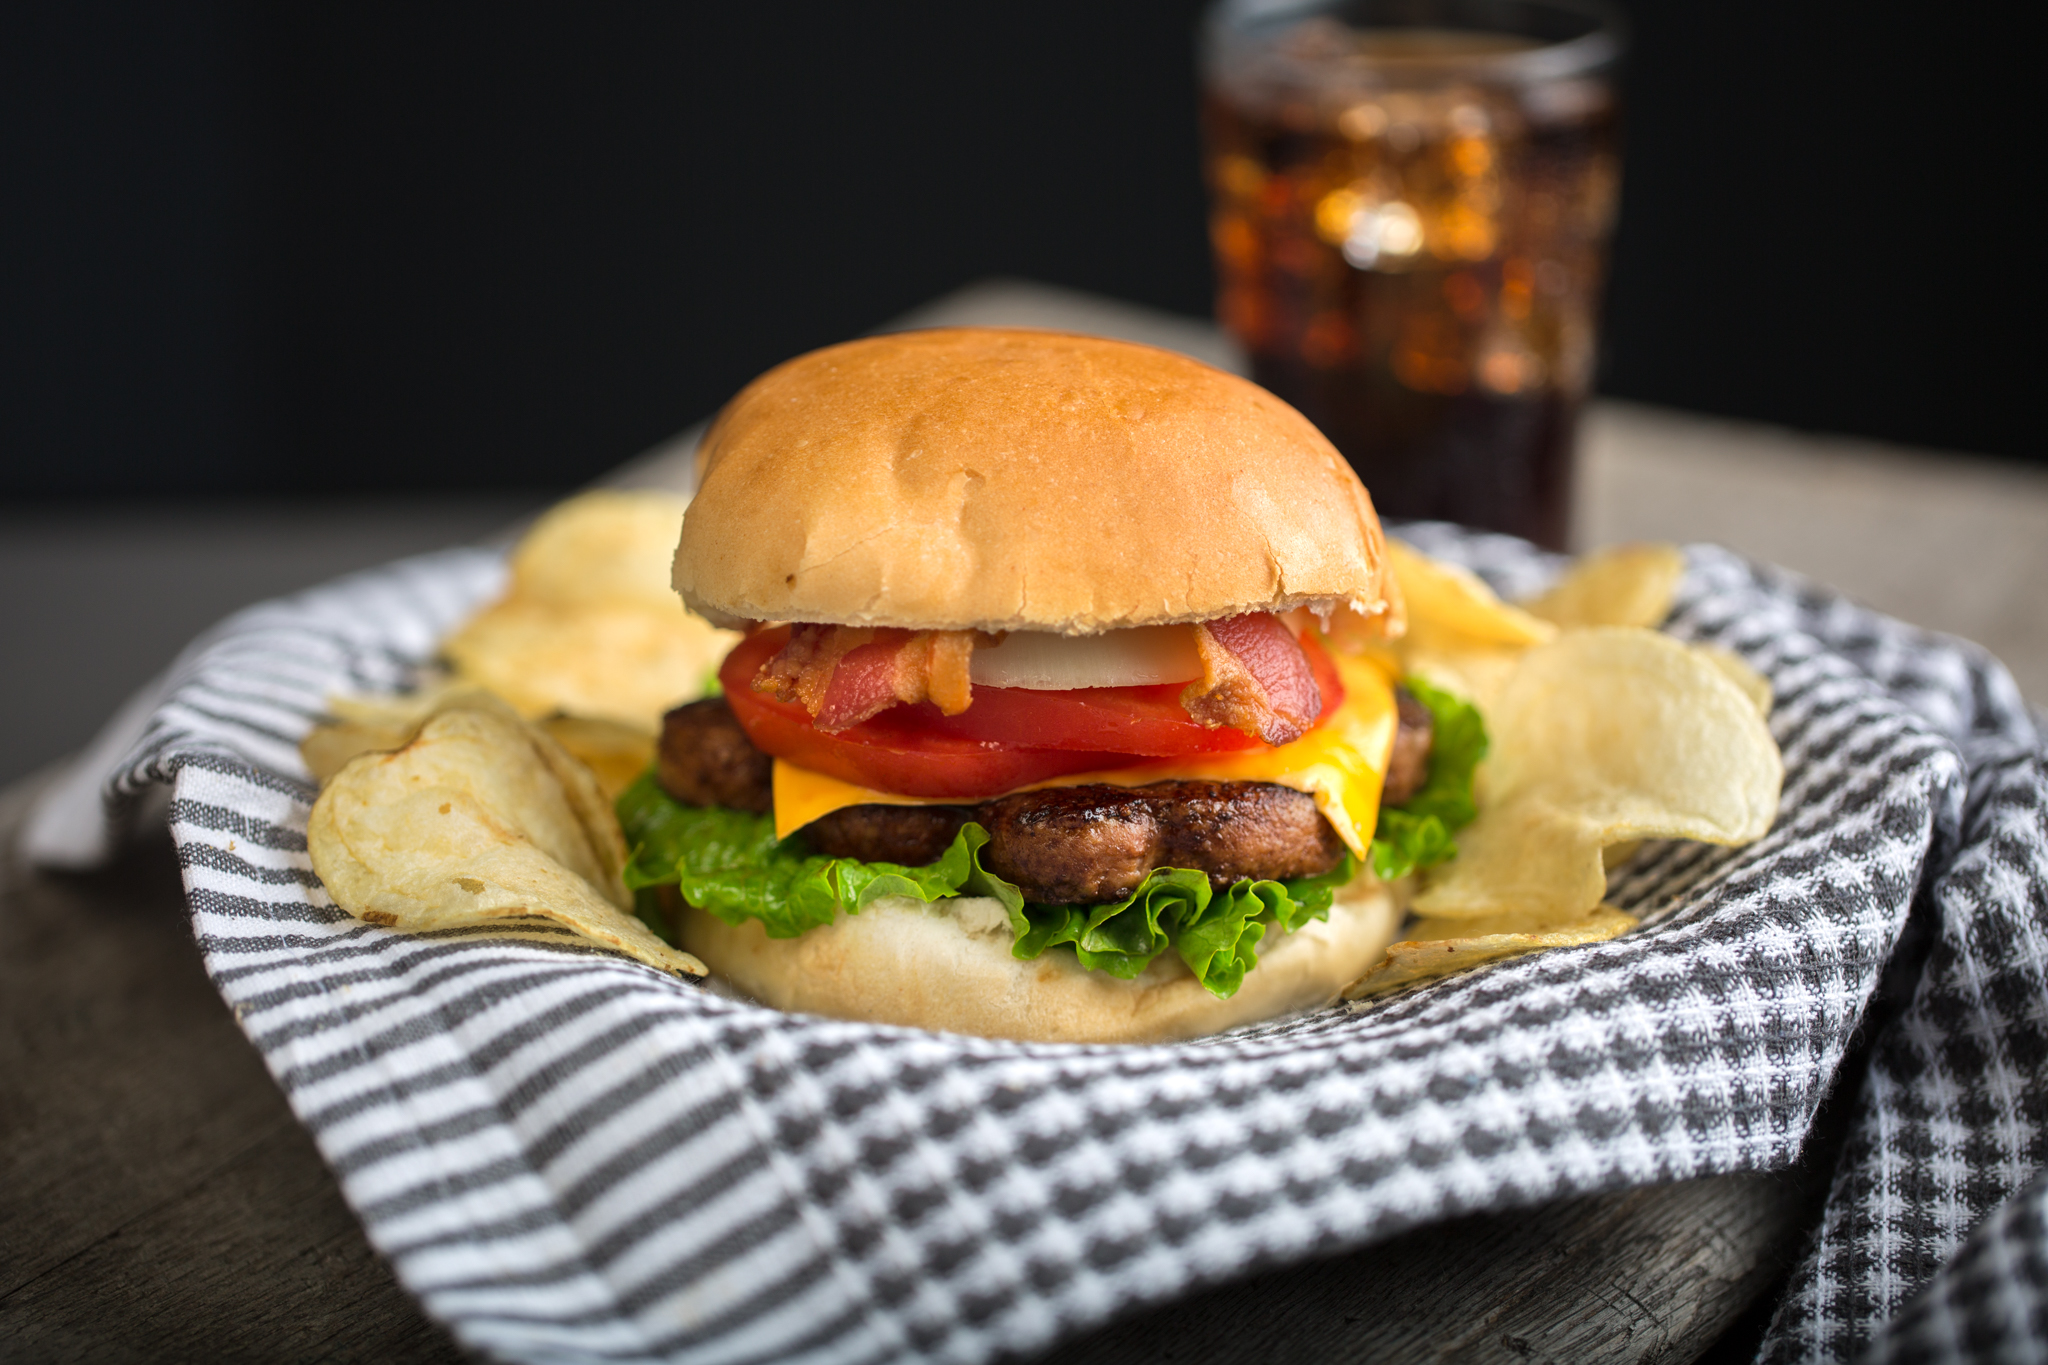 Food Photography // Hamburger // Lamplight Diner // LA Crewe Photography // Lori-Anne Crewe